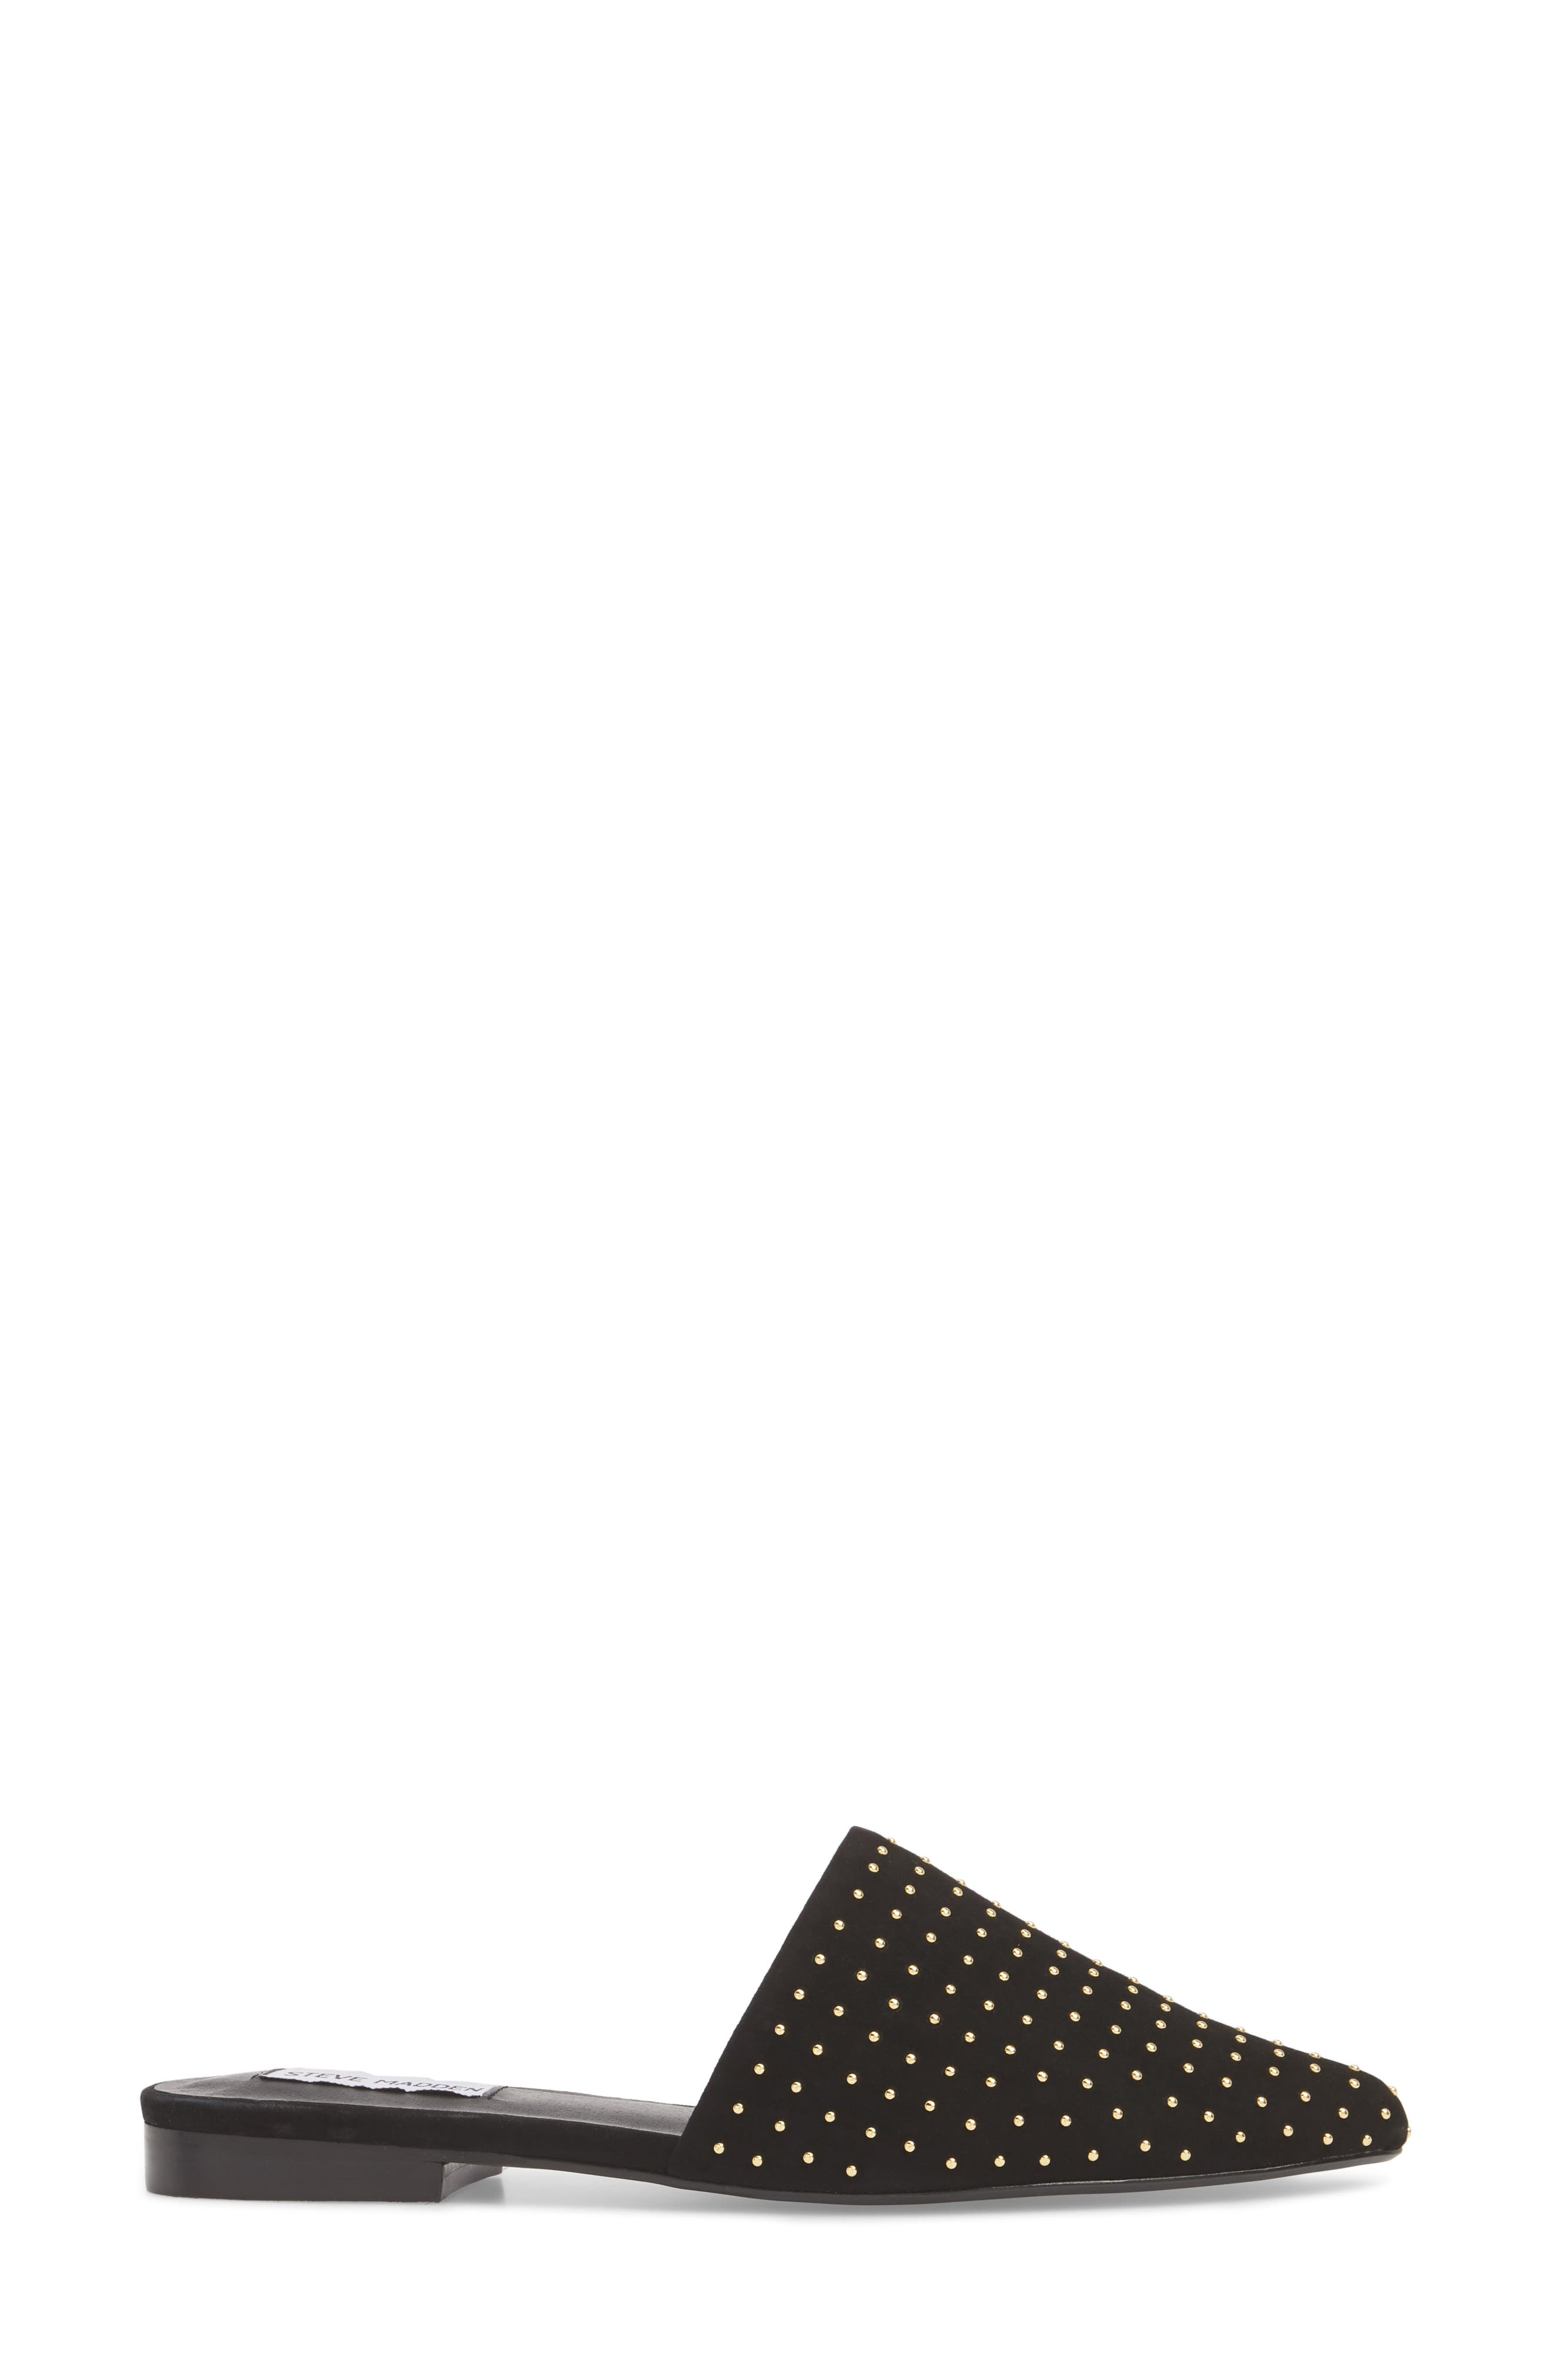 Trace Studded Mule,                             Alternate thumbnail 3, color,                             Black With Stud